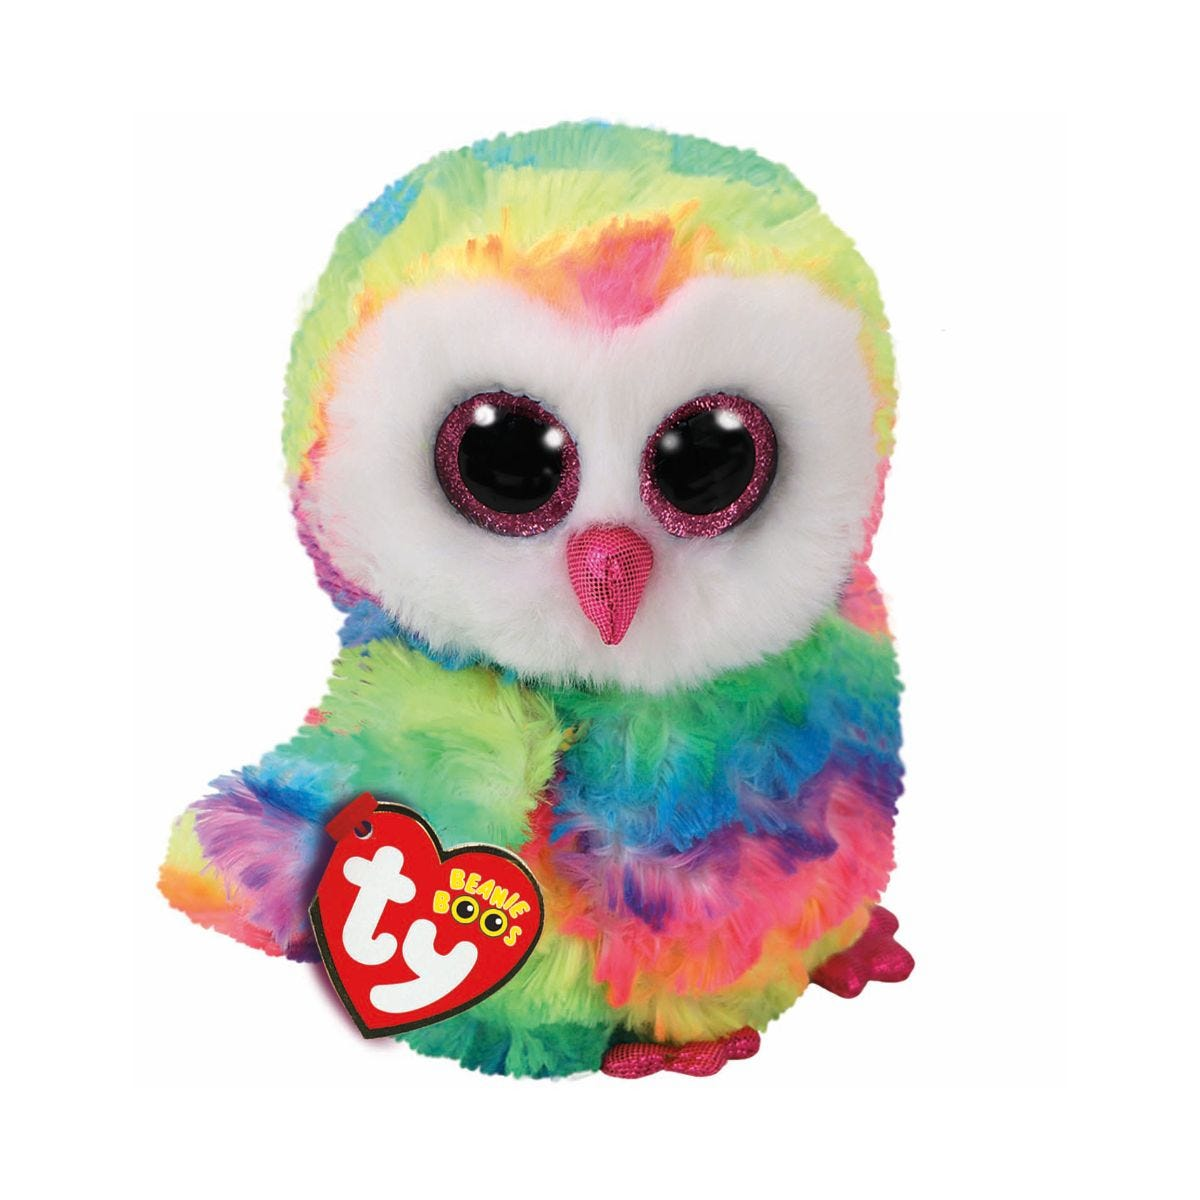 Image of Ty Owen Owl Beanie Boo Cuddly Toy